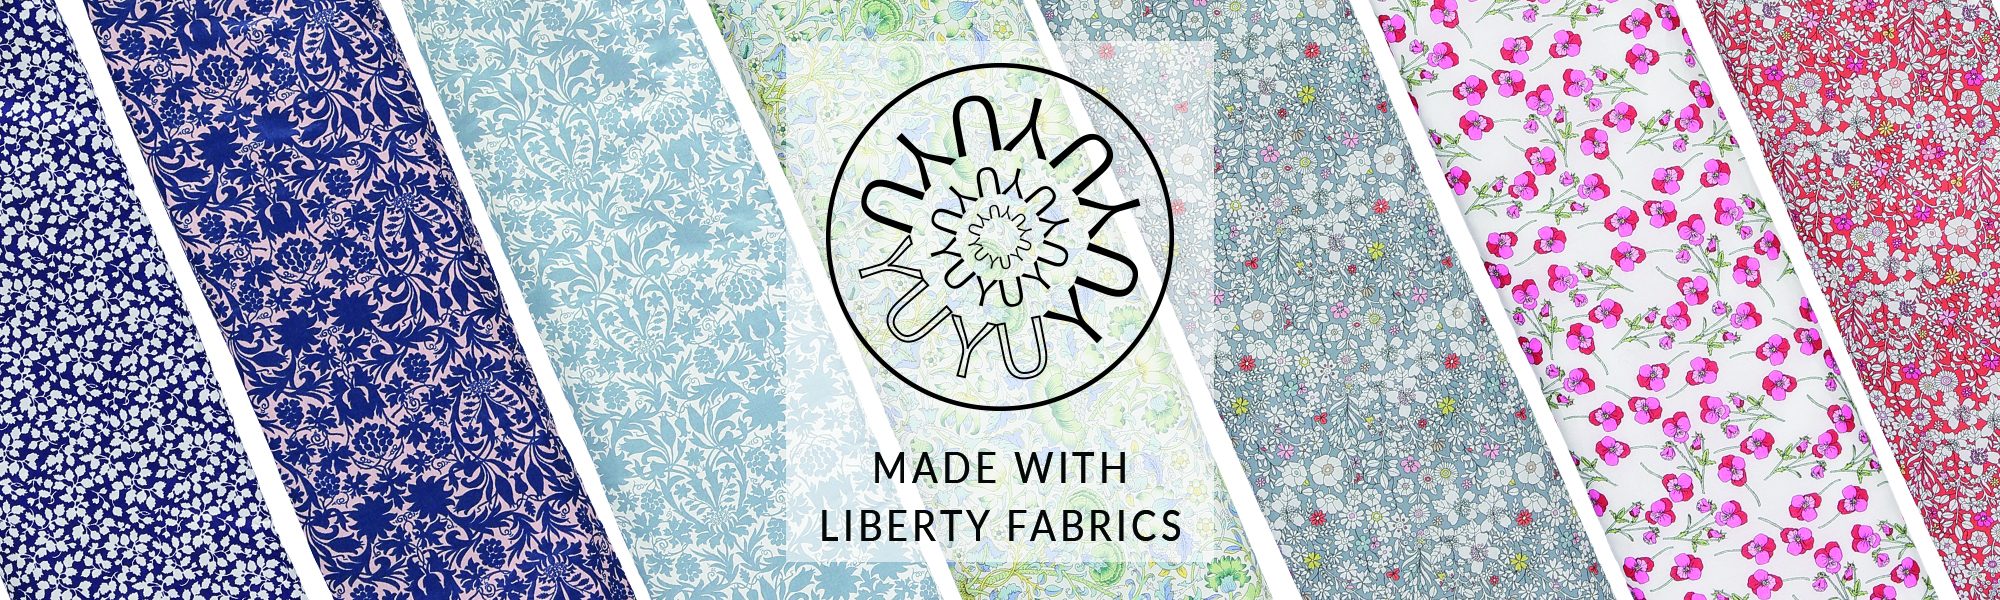 YuYu's Liberty Fabrics Collection